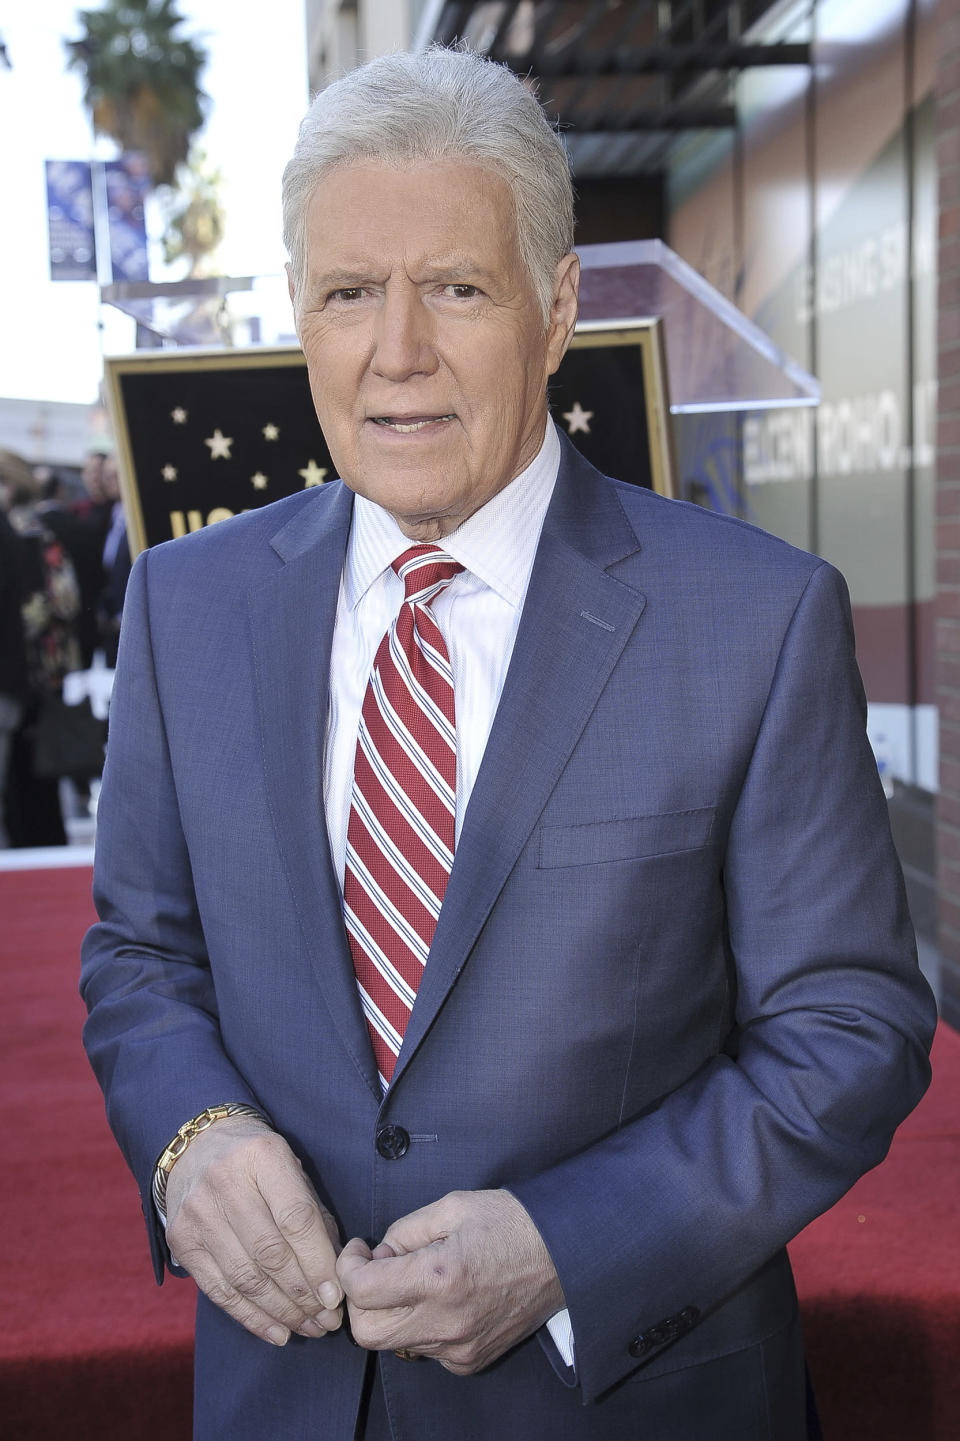 """FILE - Alex Trebek, host of """"Jeopardy!"""" attends a ceremony honoring the show's executive producer Harry Friedman with a star on the Hollywood Walk of Fame on Nov. 1, 2019, in Los Angeles. More than two months after Trebek's death, fans of """"Jeopardy!"""" finally got the chance to say goodbye. A video tribute to the host opened the Friday, Jan. 8, 2021, episode of the quiz show, the final one that Trebek taped before pancreatic cancer claimed his life on Nov. 8. (Photo by Richard Shotwell/Invision/AP, File)"""